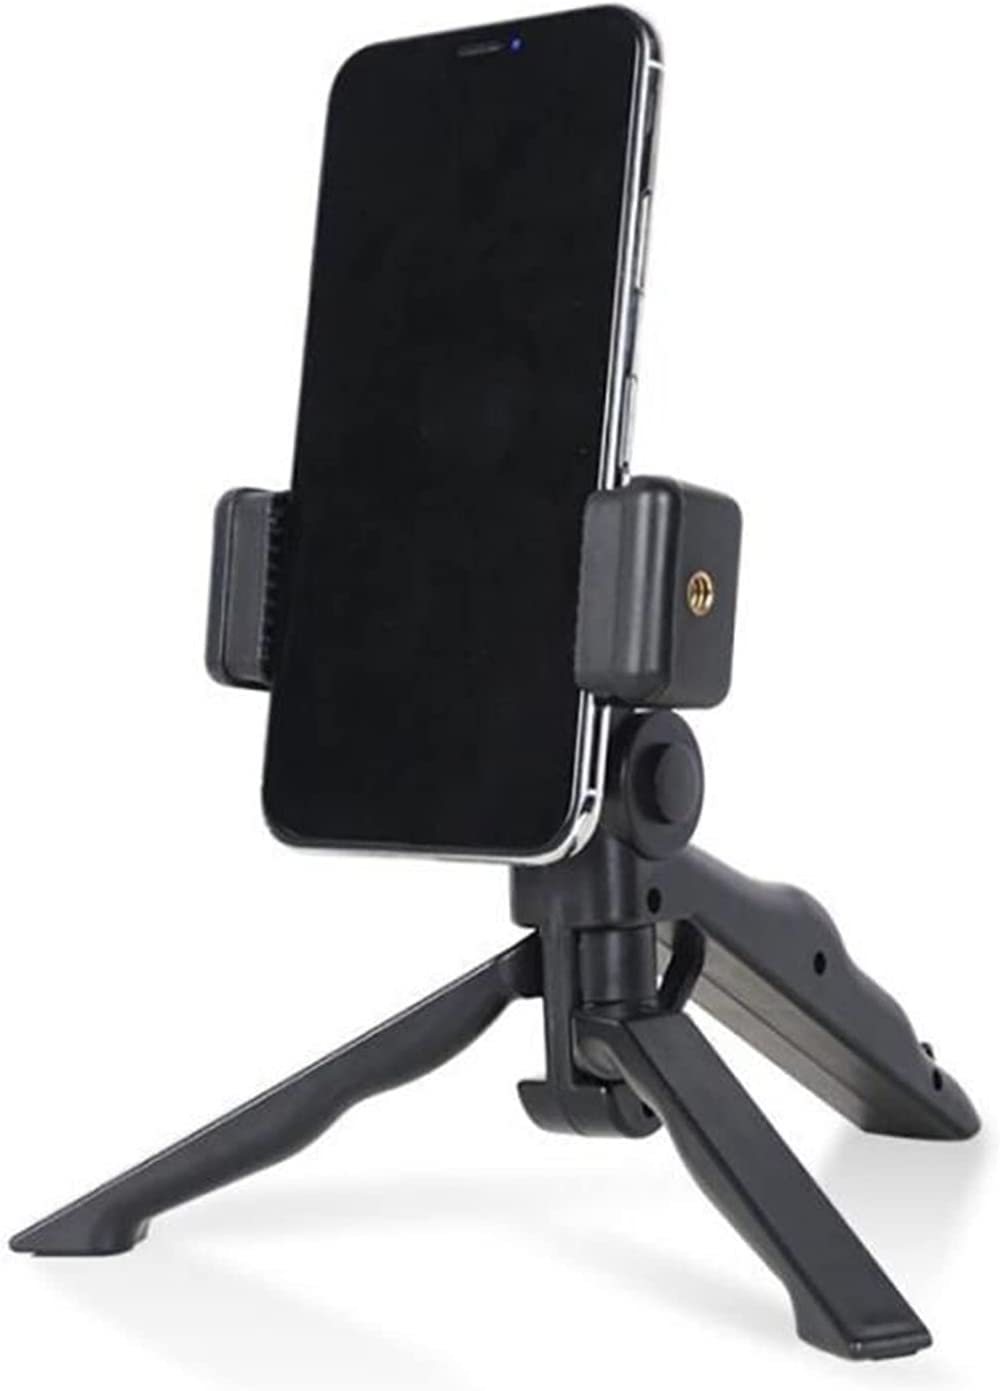 BJJXTD Newest Professional Foldable Camera Holder S Stand Super special price Max 59% OFF Tripod